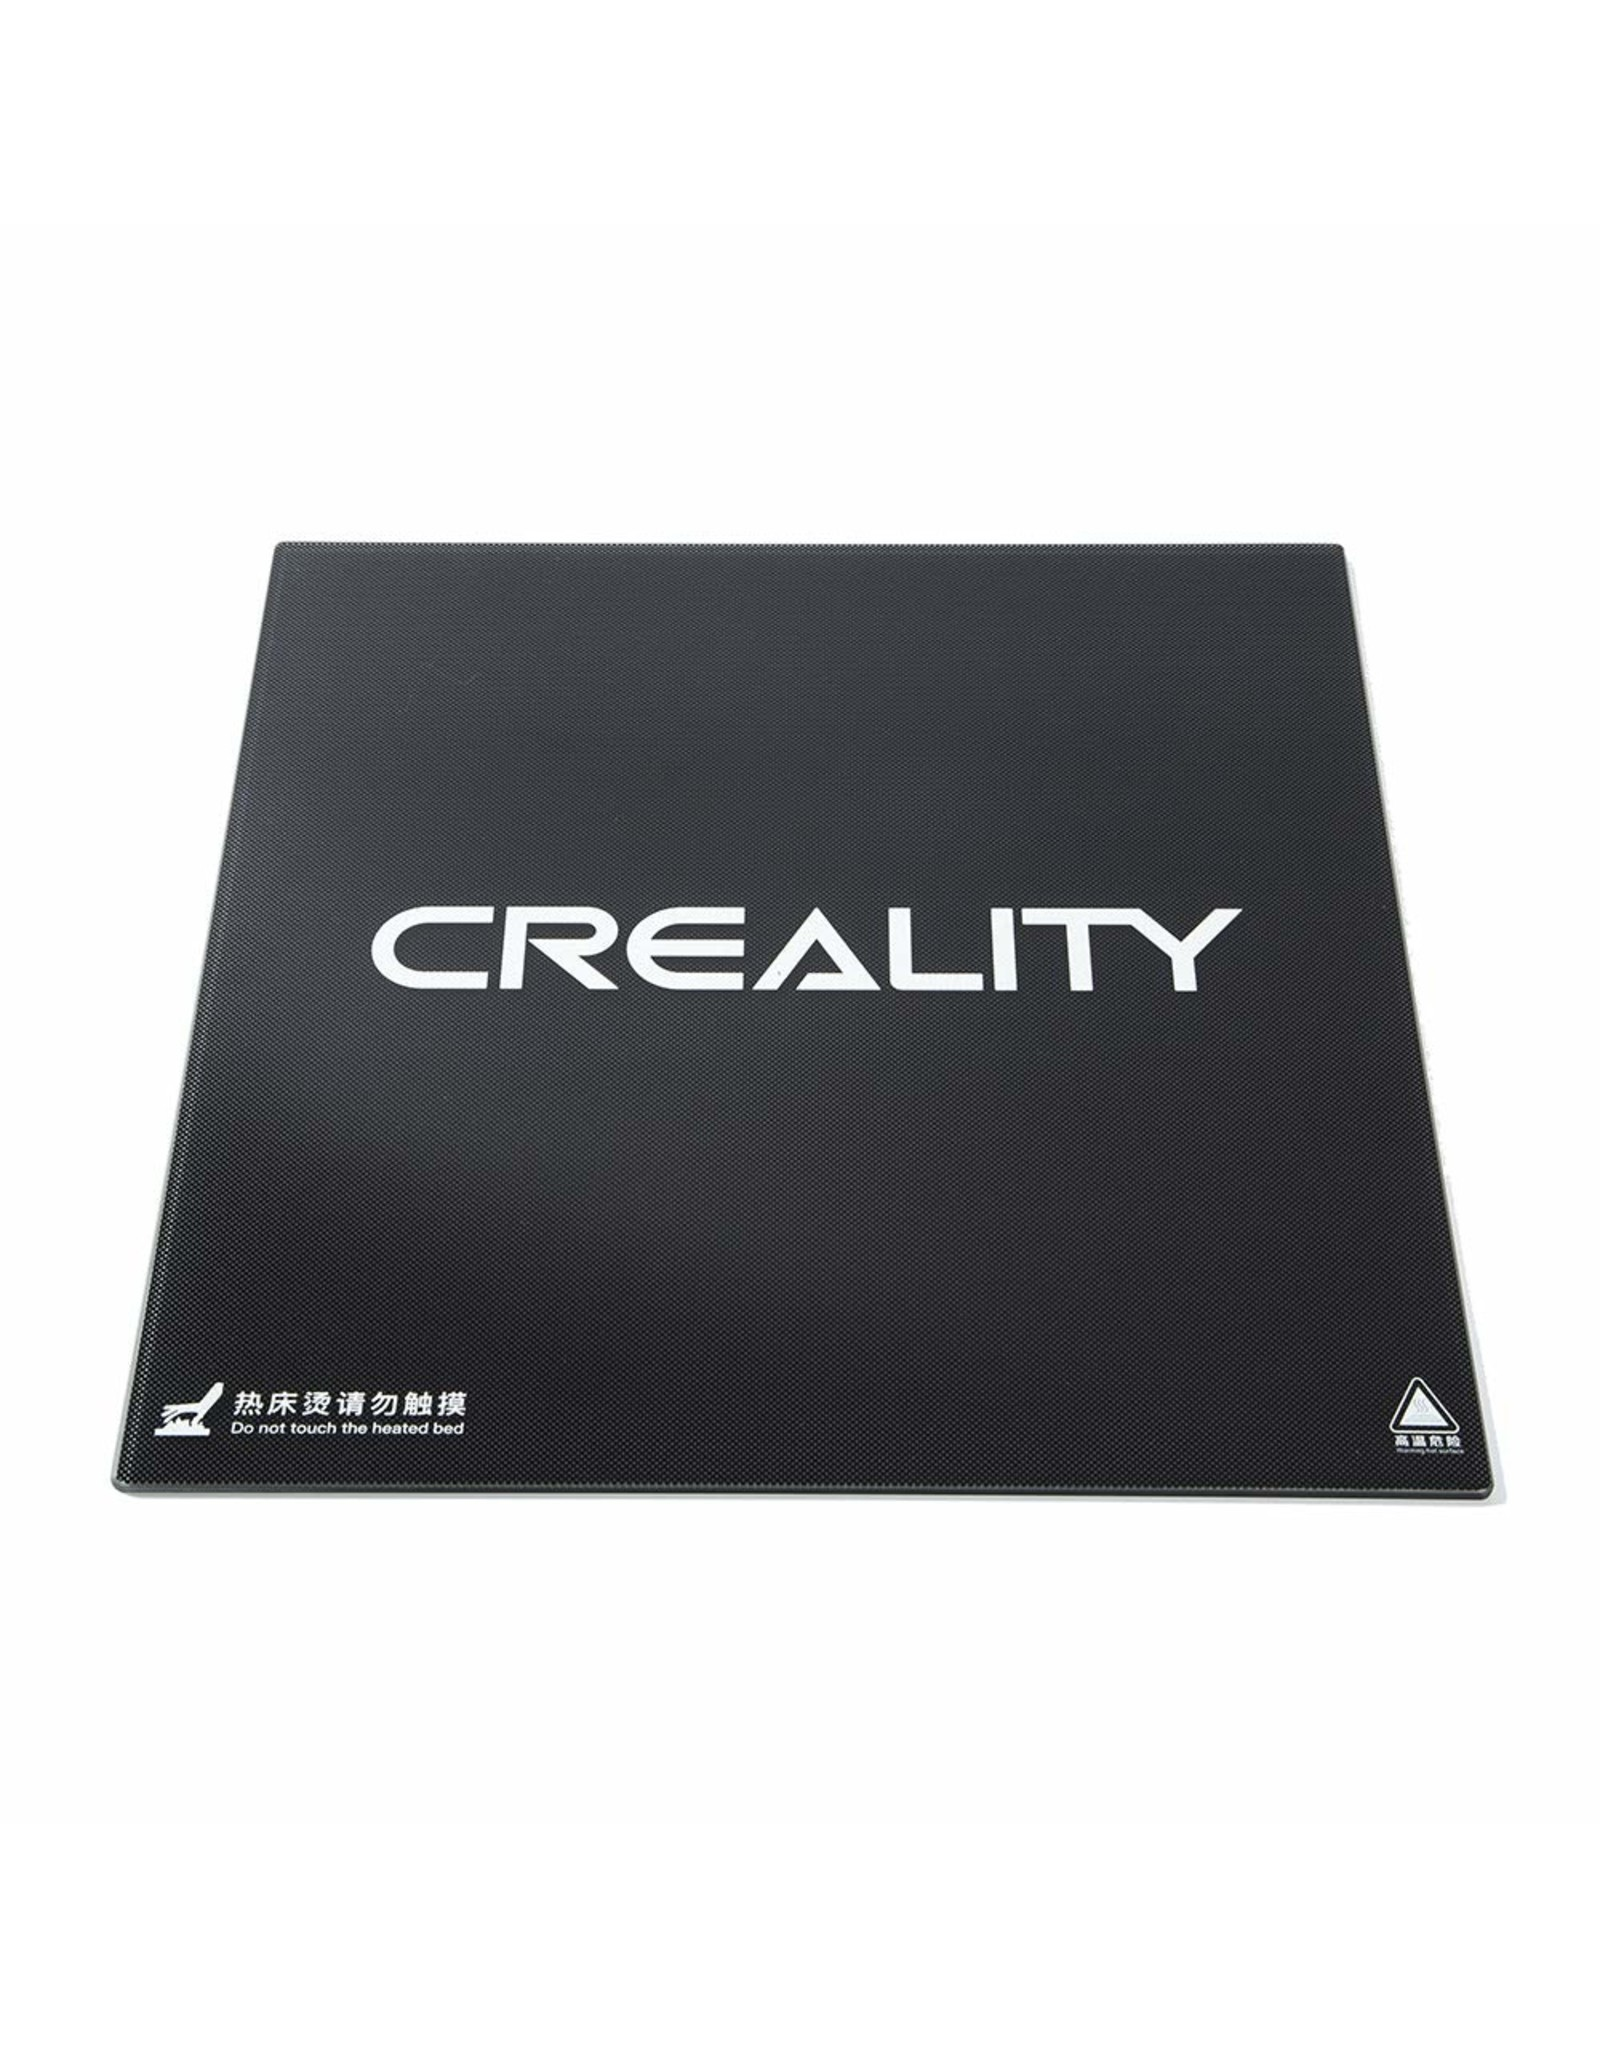 Creality/Ender Creality 3D Carbon Glass Plate 235 x 235 mm